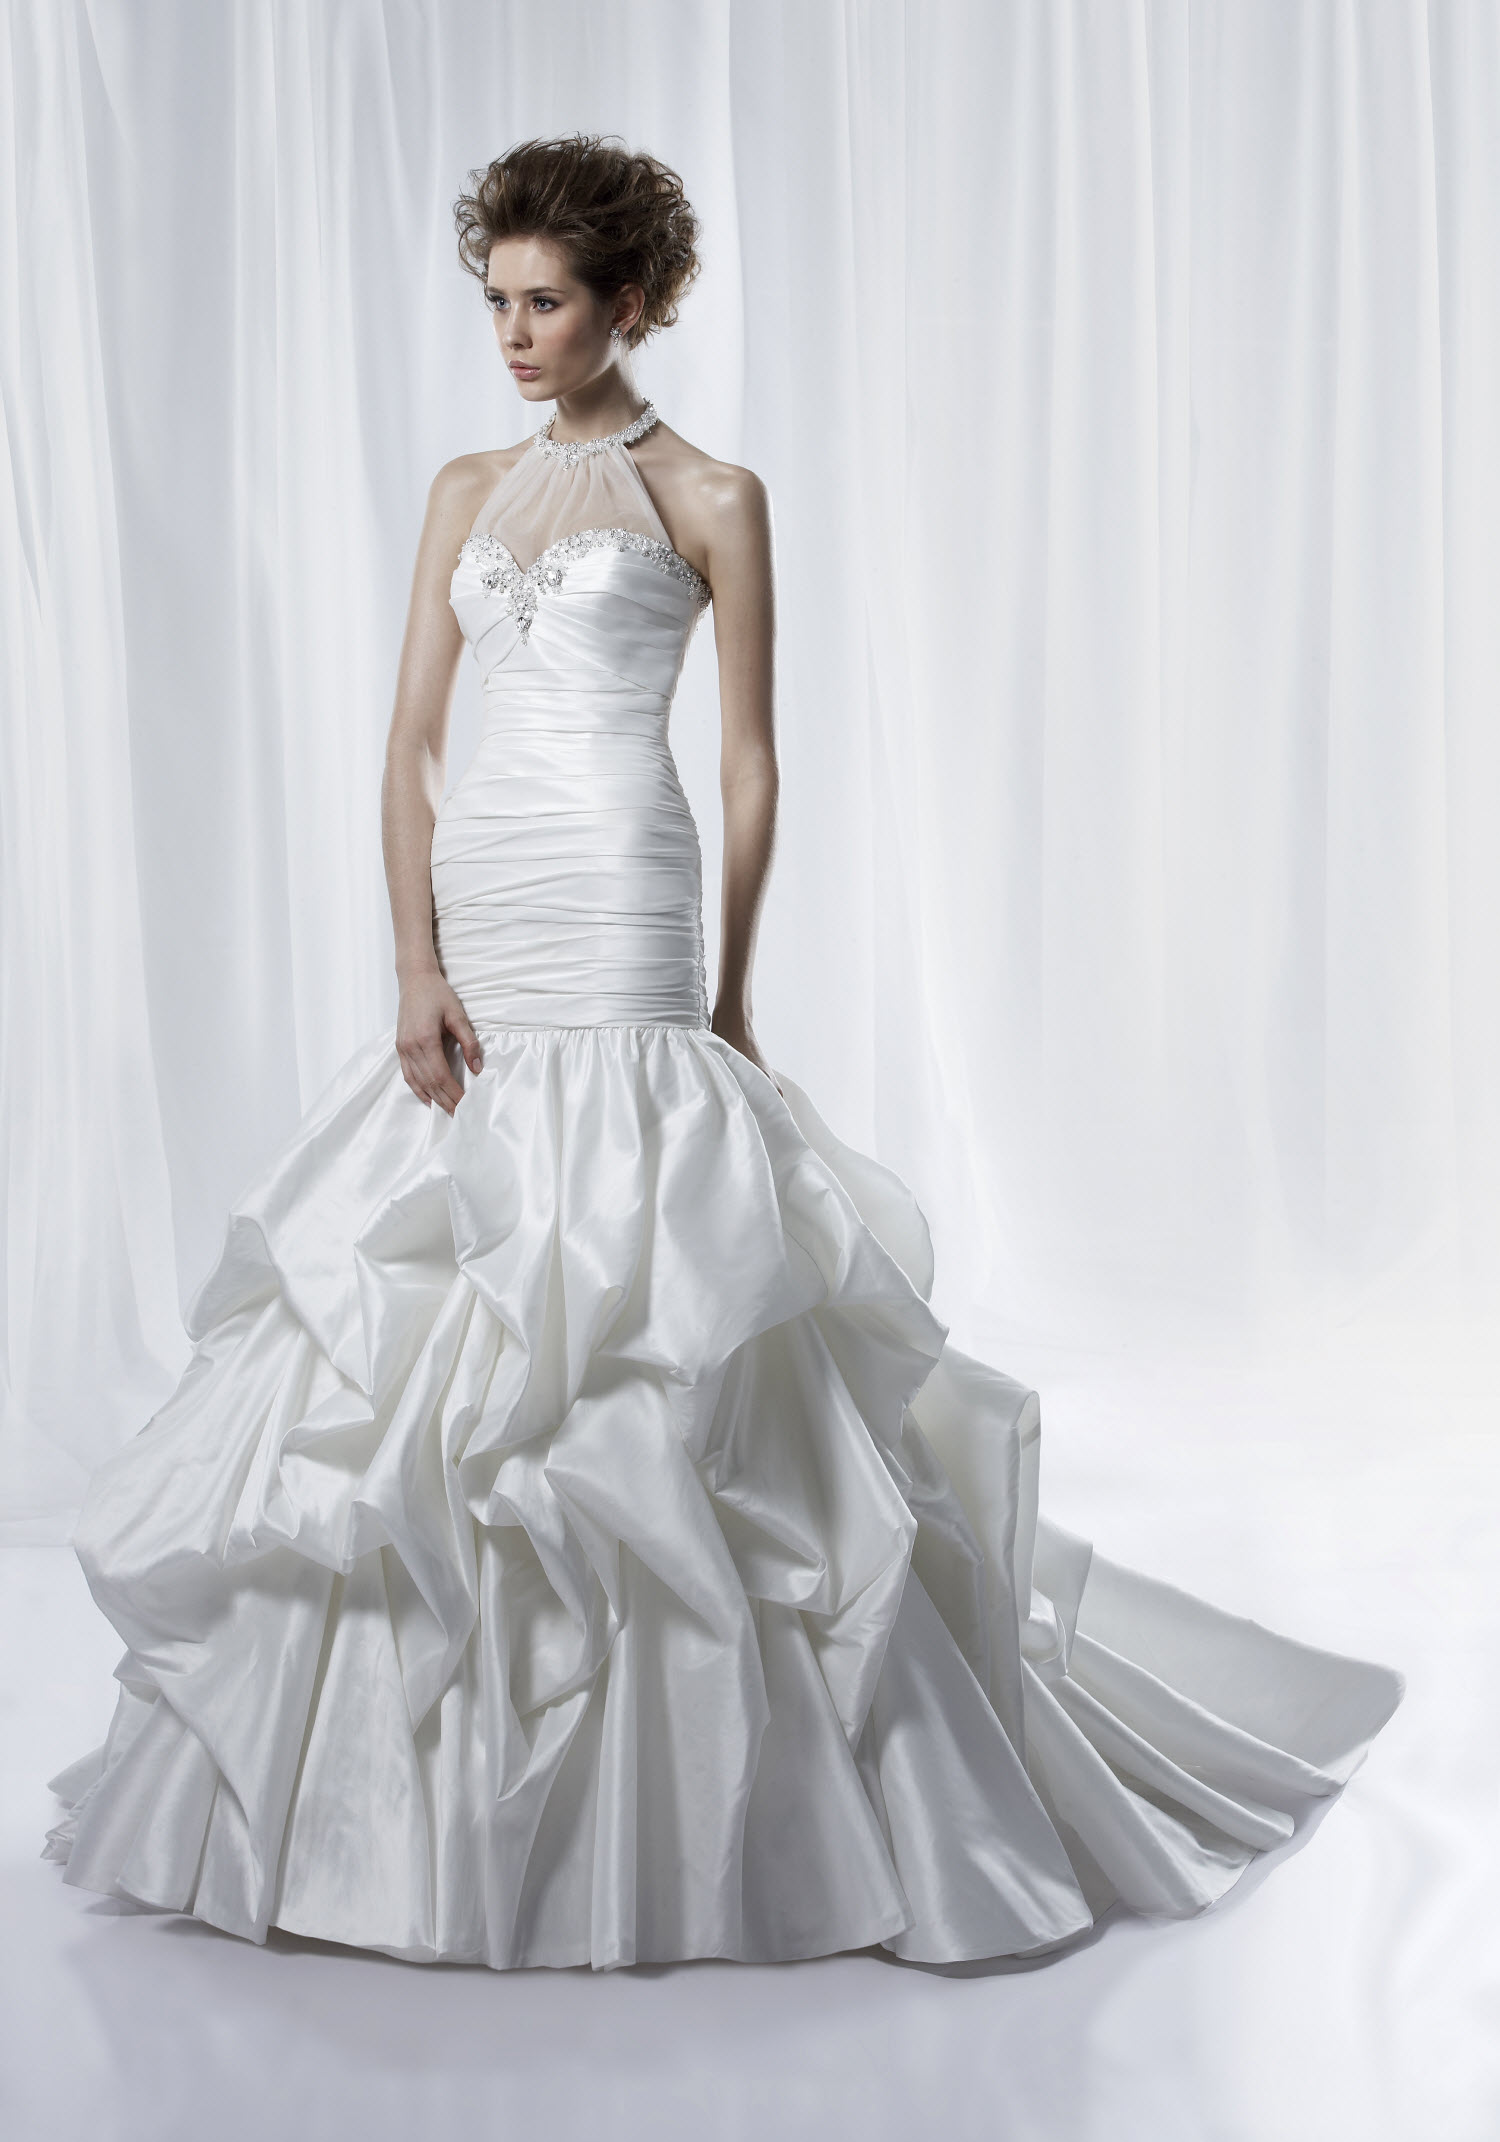 Glamourous-wedding-dresses-a213a-halter-bridal-gown-bustle-ballgown-skirt.original